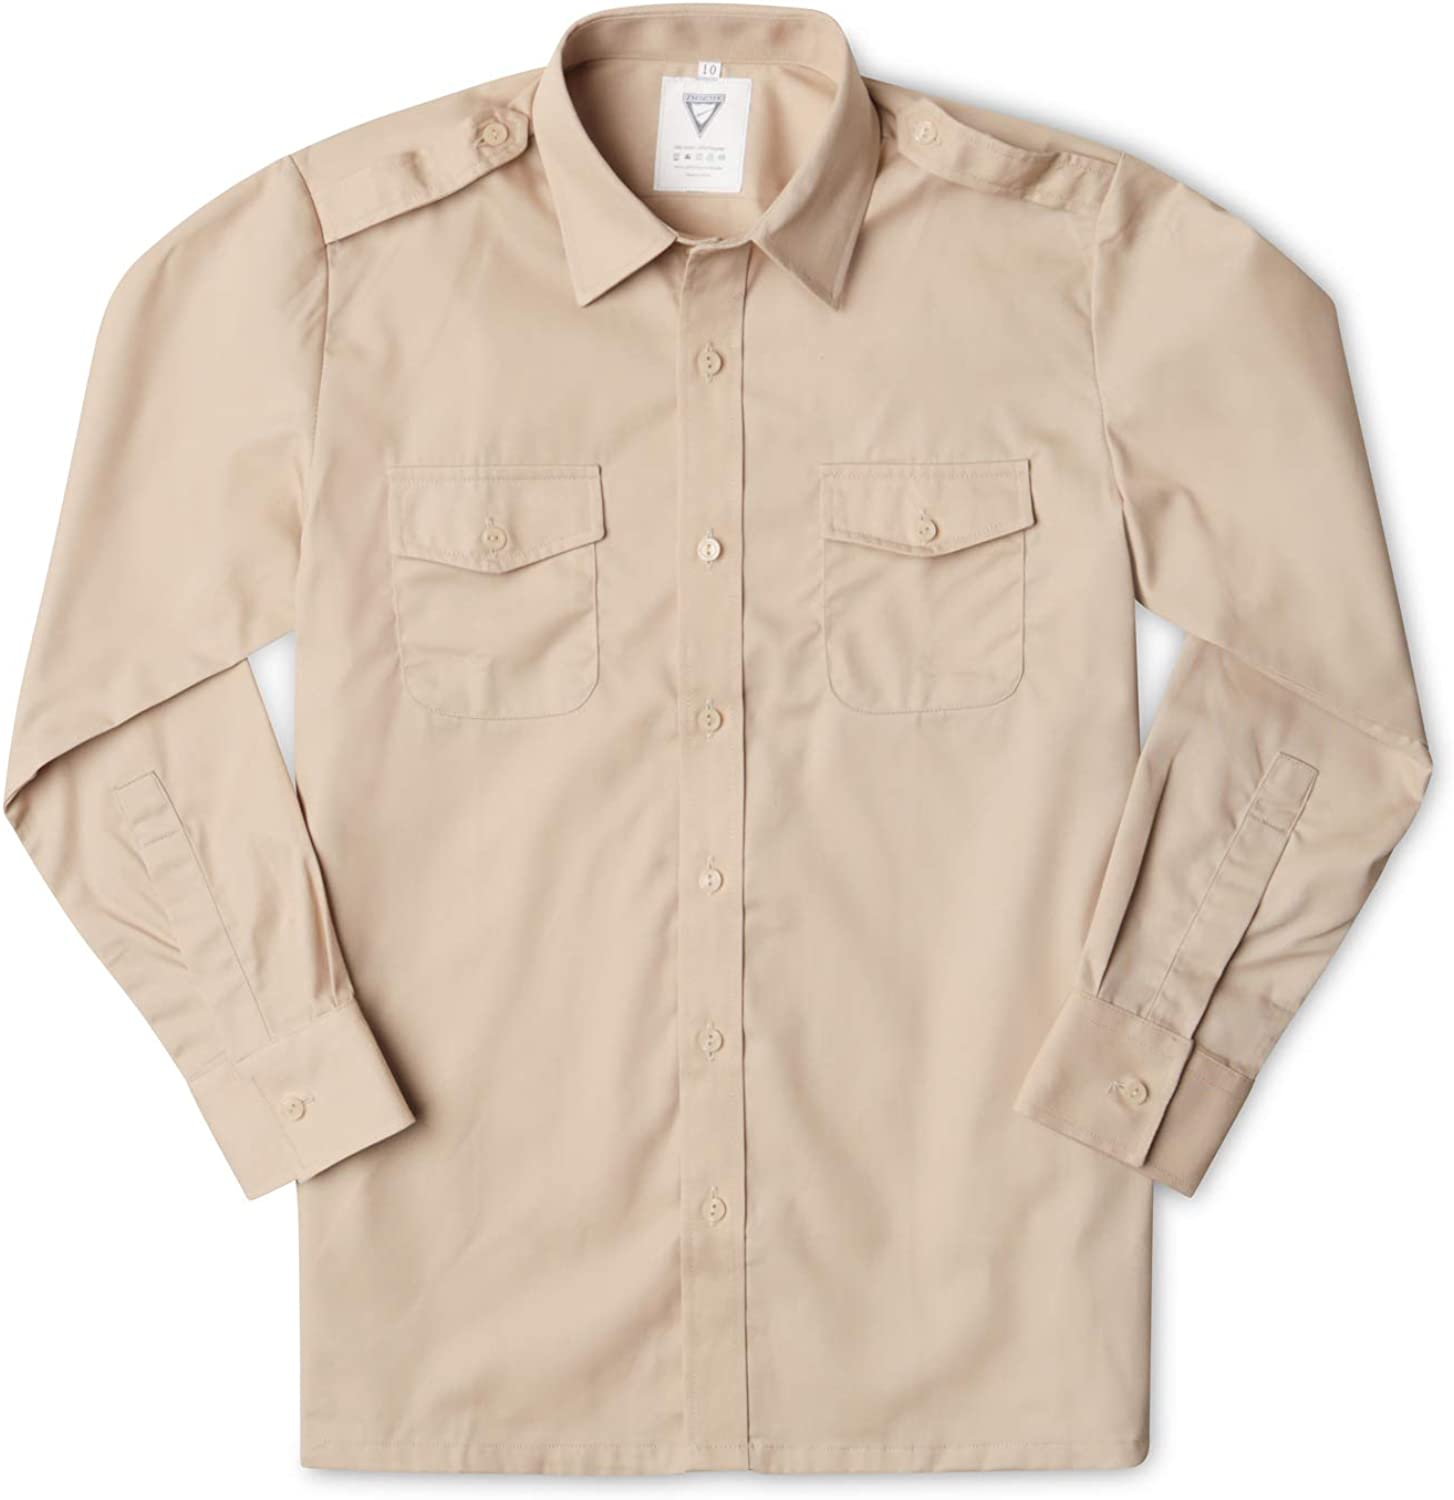 Mean and Green Childrens Fawn Pathfinder Shirt